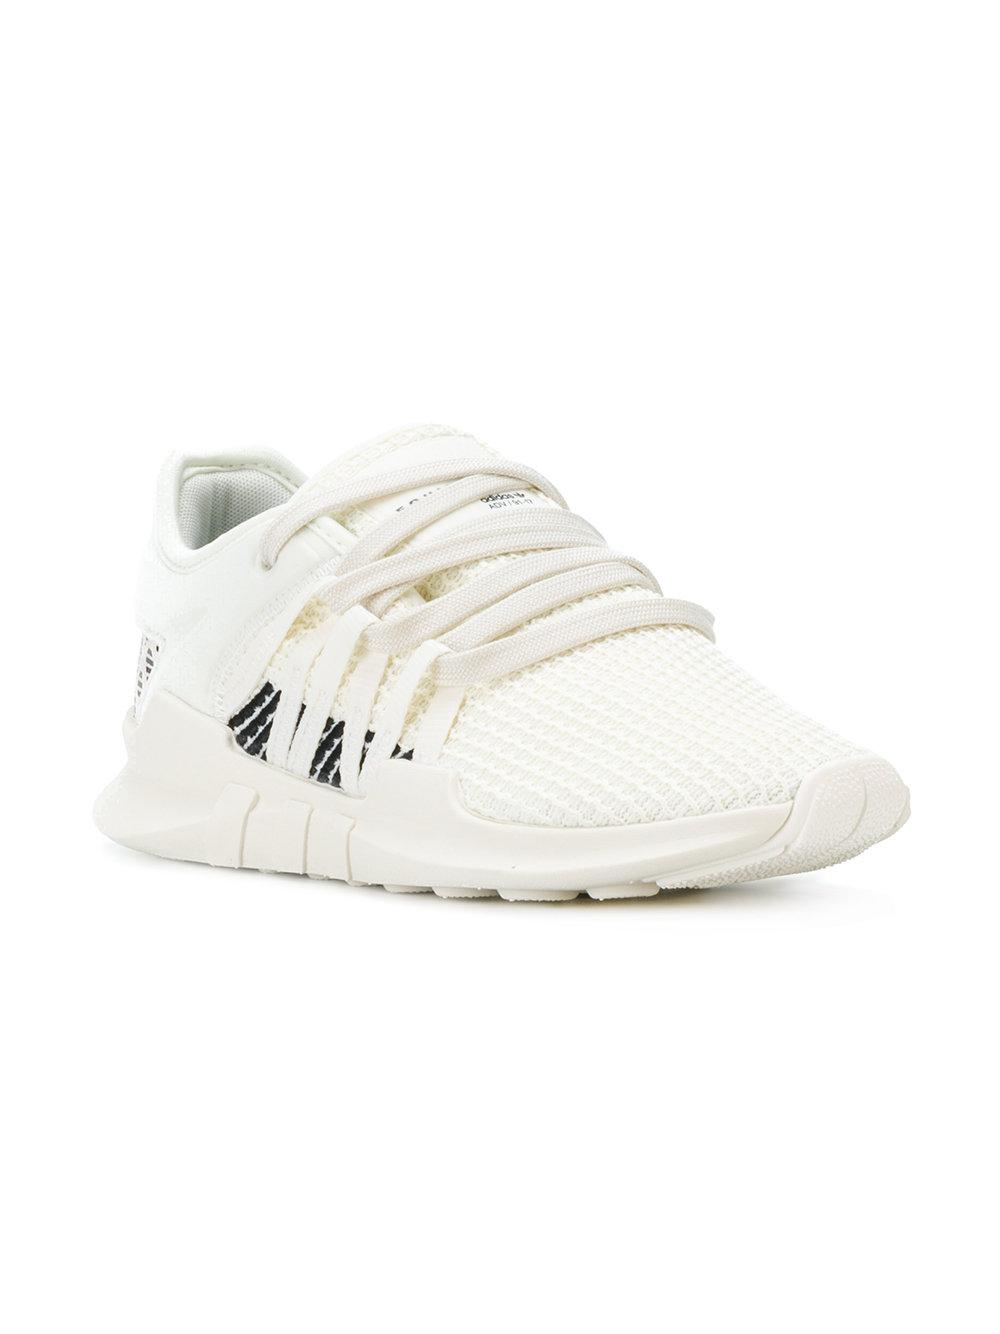 finest selection 9fa1d c0c2c adidas Synthetic Originals Eqt Racing Adv 91/17 Sneakers in ...